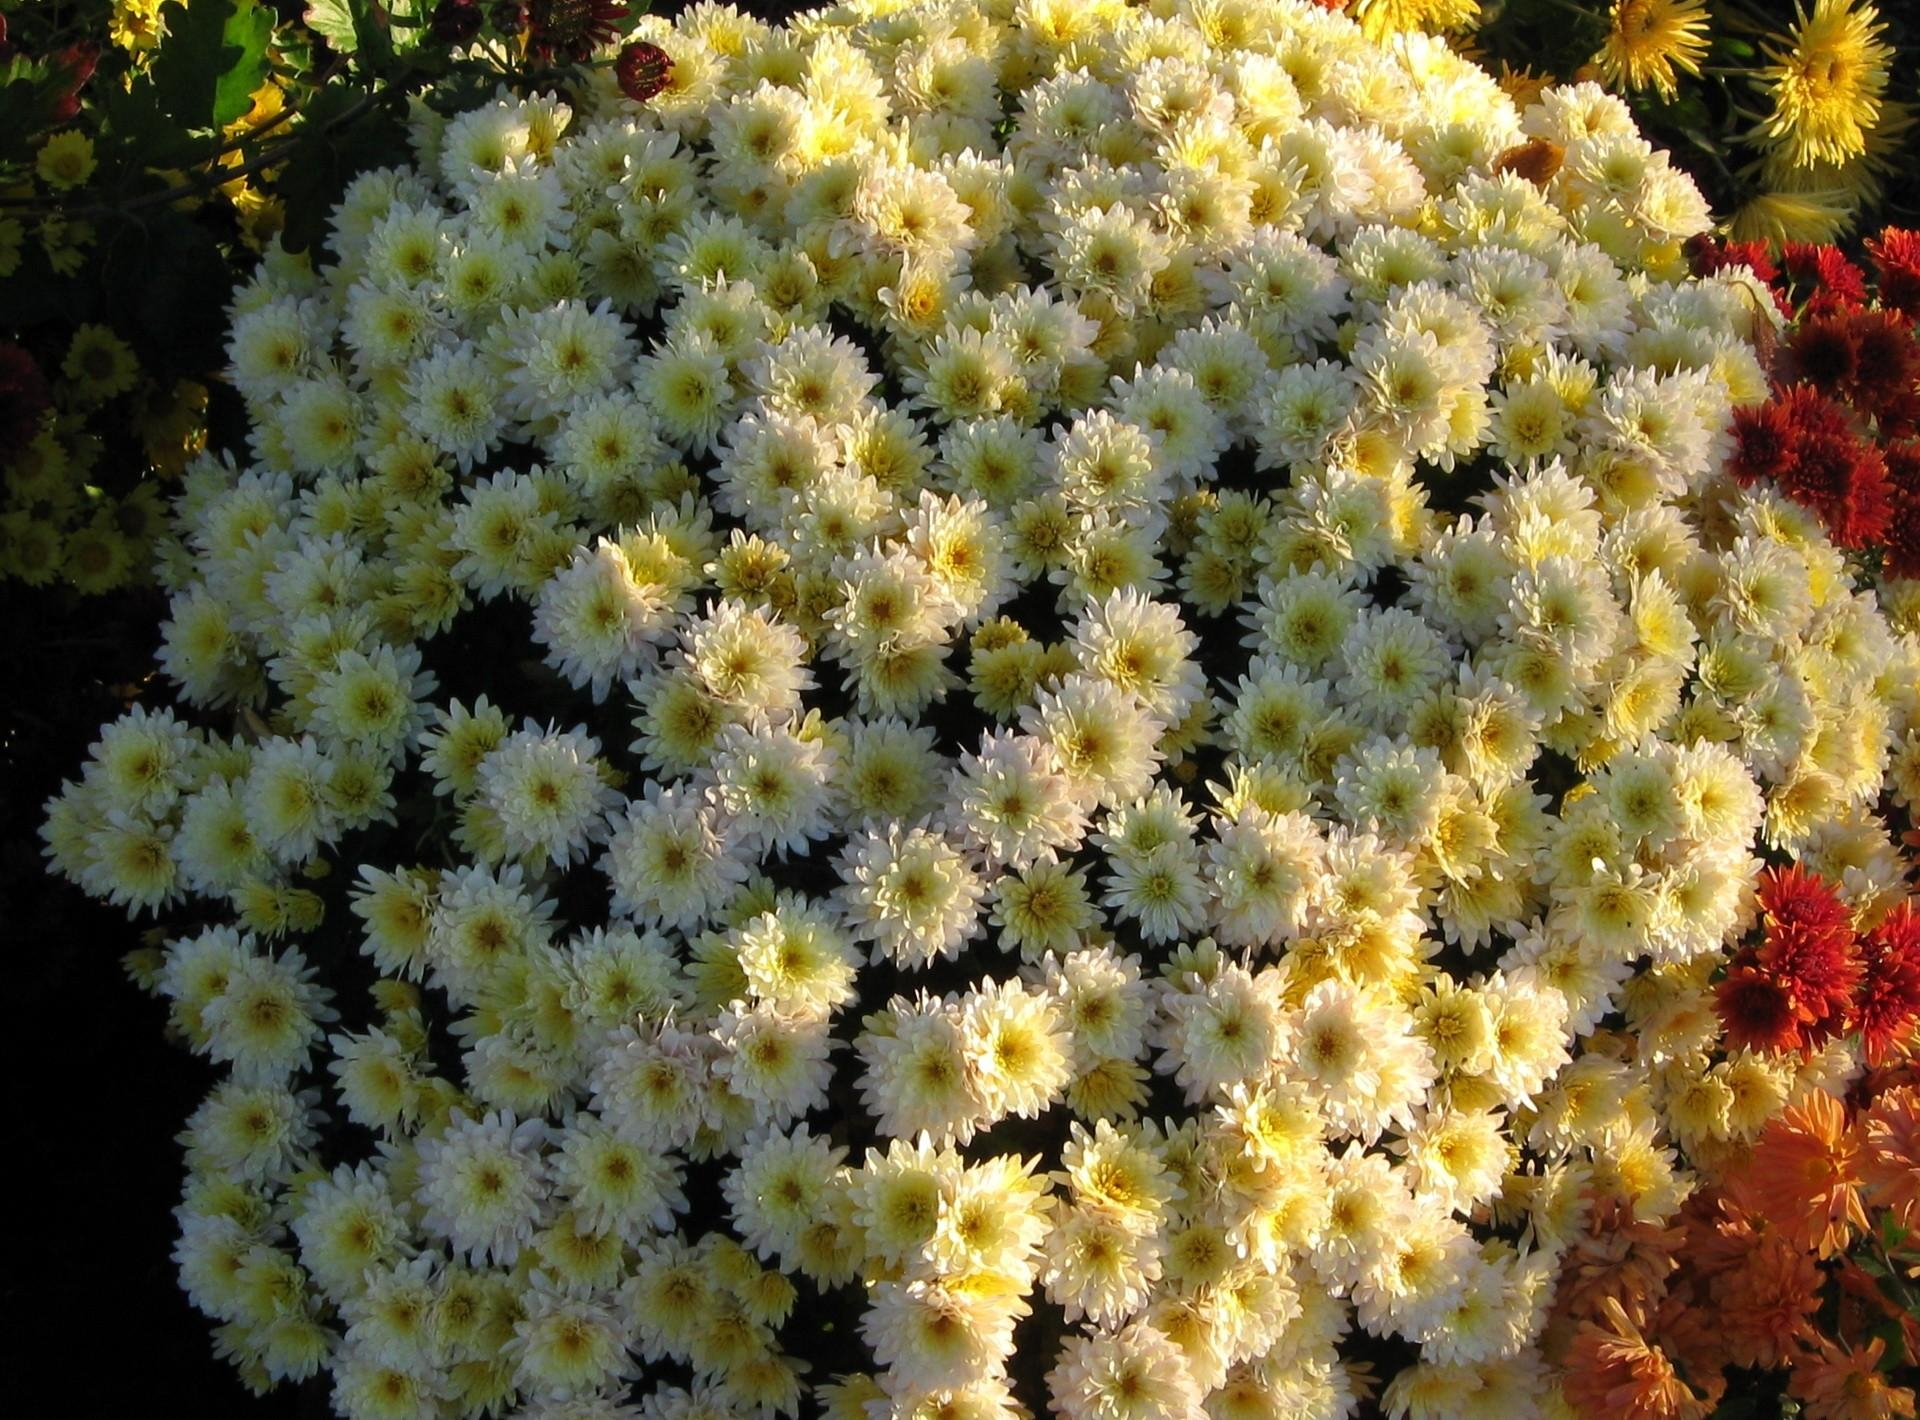 133844 download wallpaper Flowers, Flower Bed, Flowerbed, Ball, Garden, Chrysanthemum screensavers and pictures for free